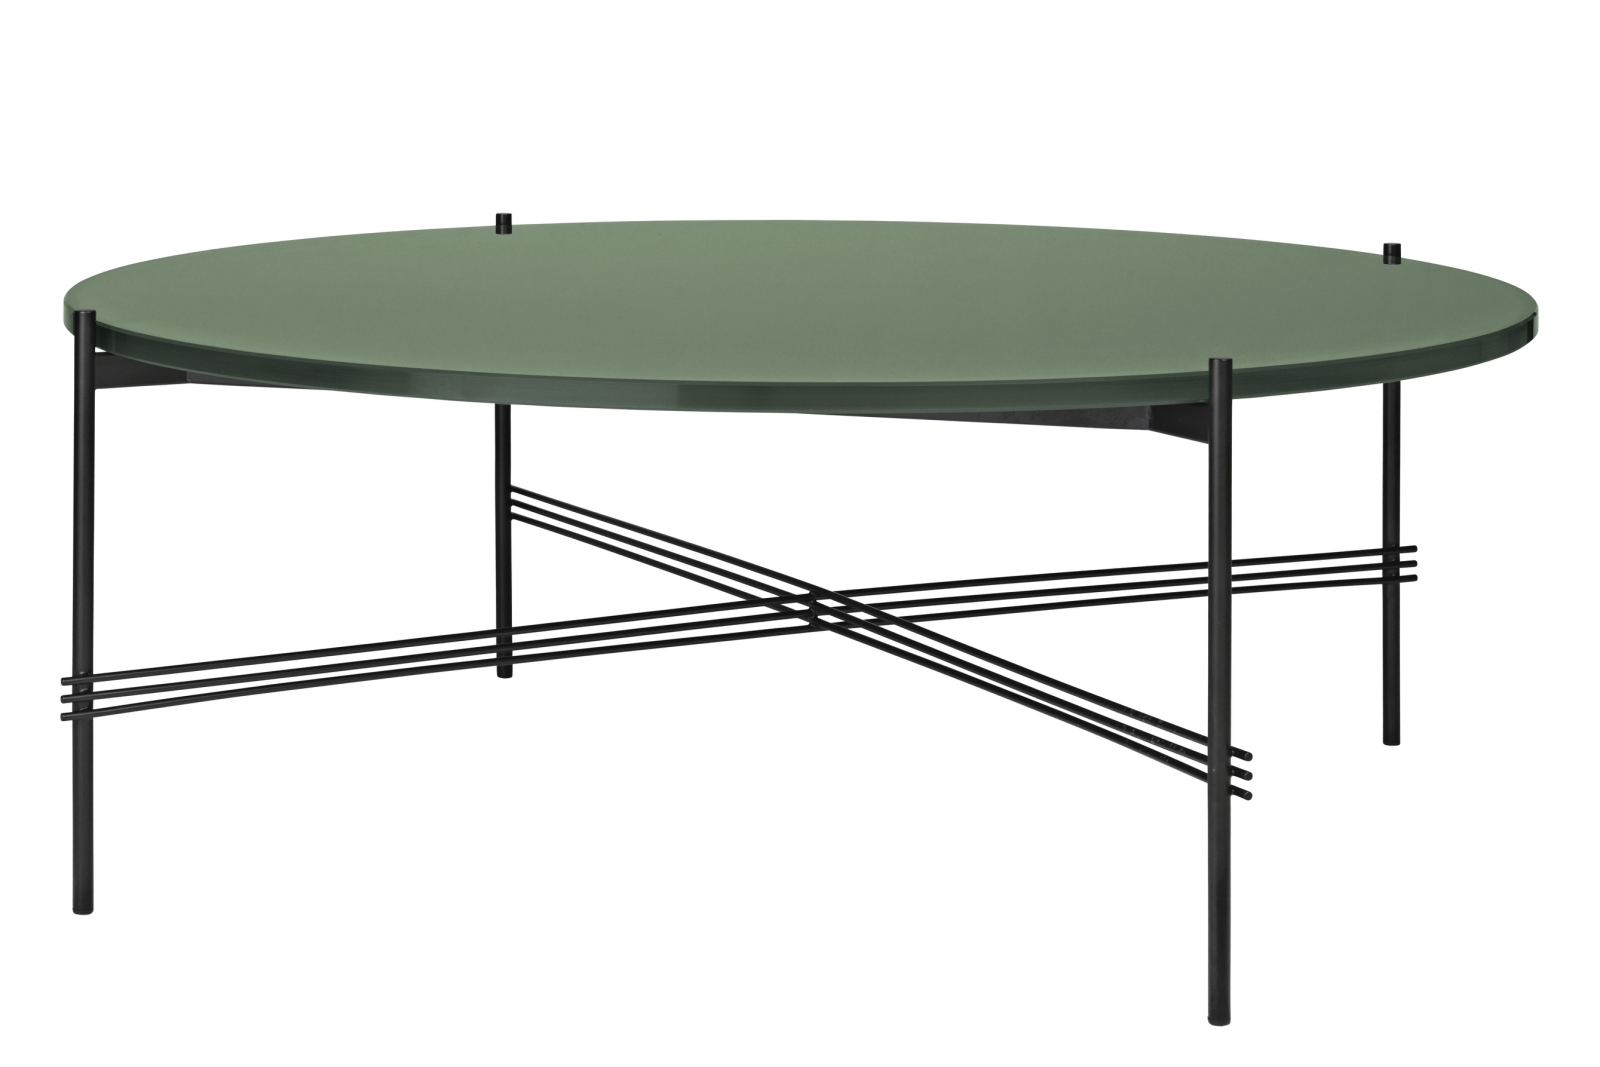 TS Round Coffee Table with Glass Top - Black Frame Gubi Glass Dusty Green, Ø 105 x H 40 cm